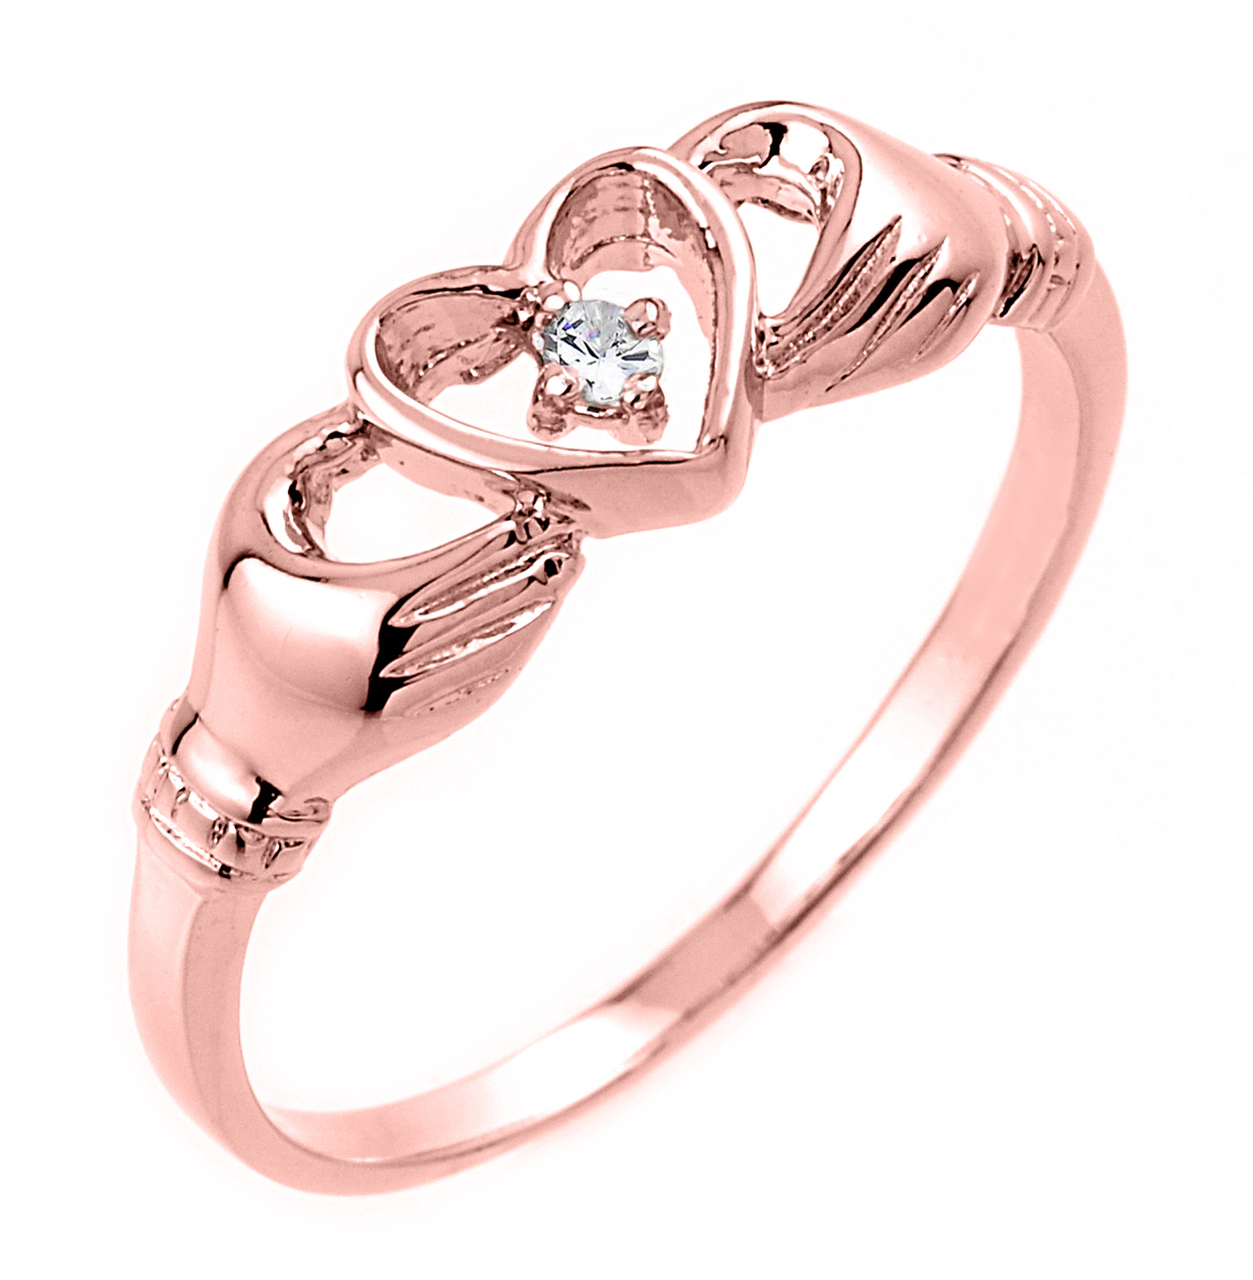 0.02ct Claddagh Ring in 14K Rose Gold